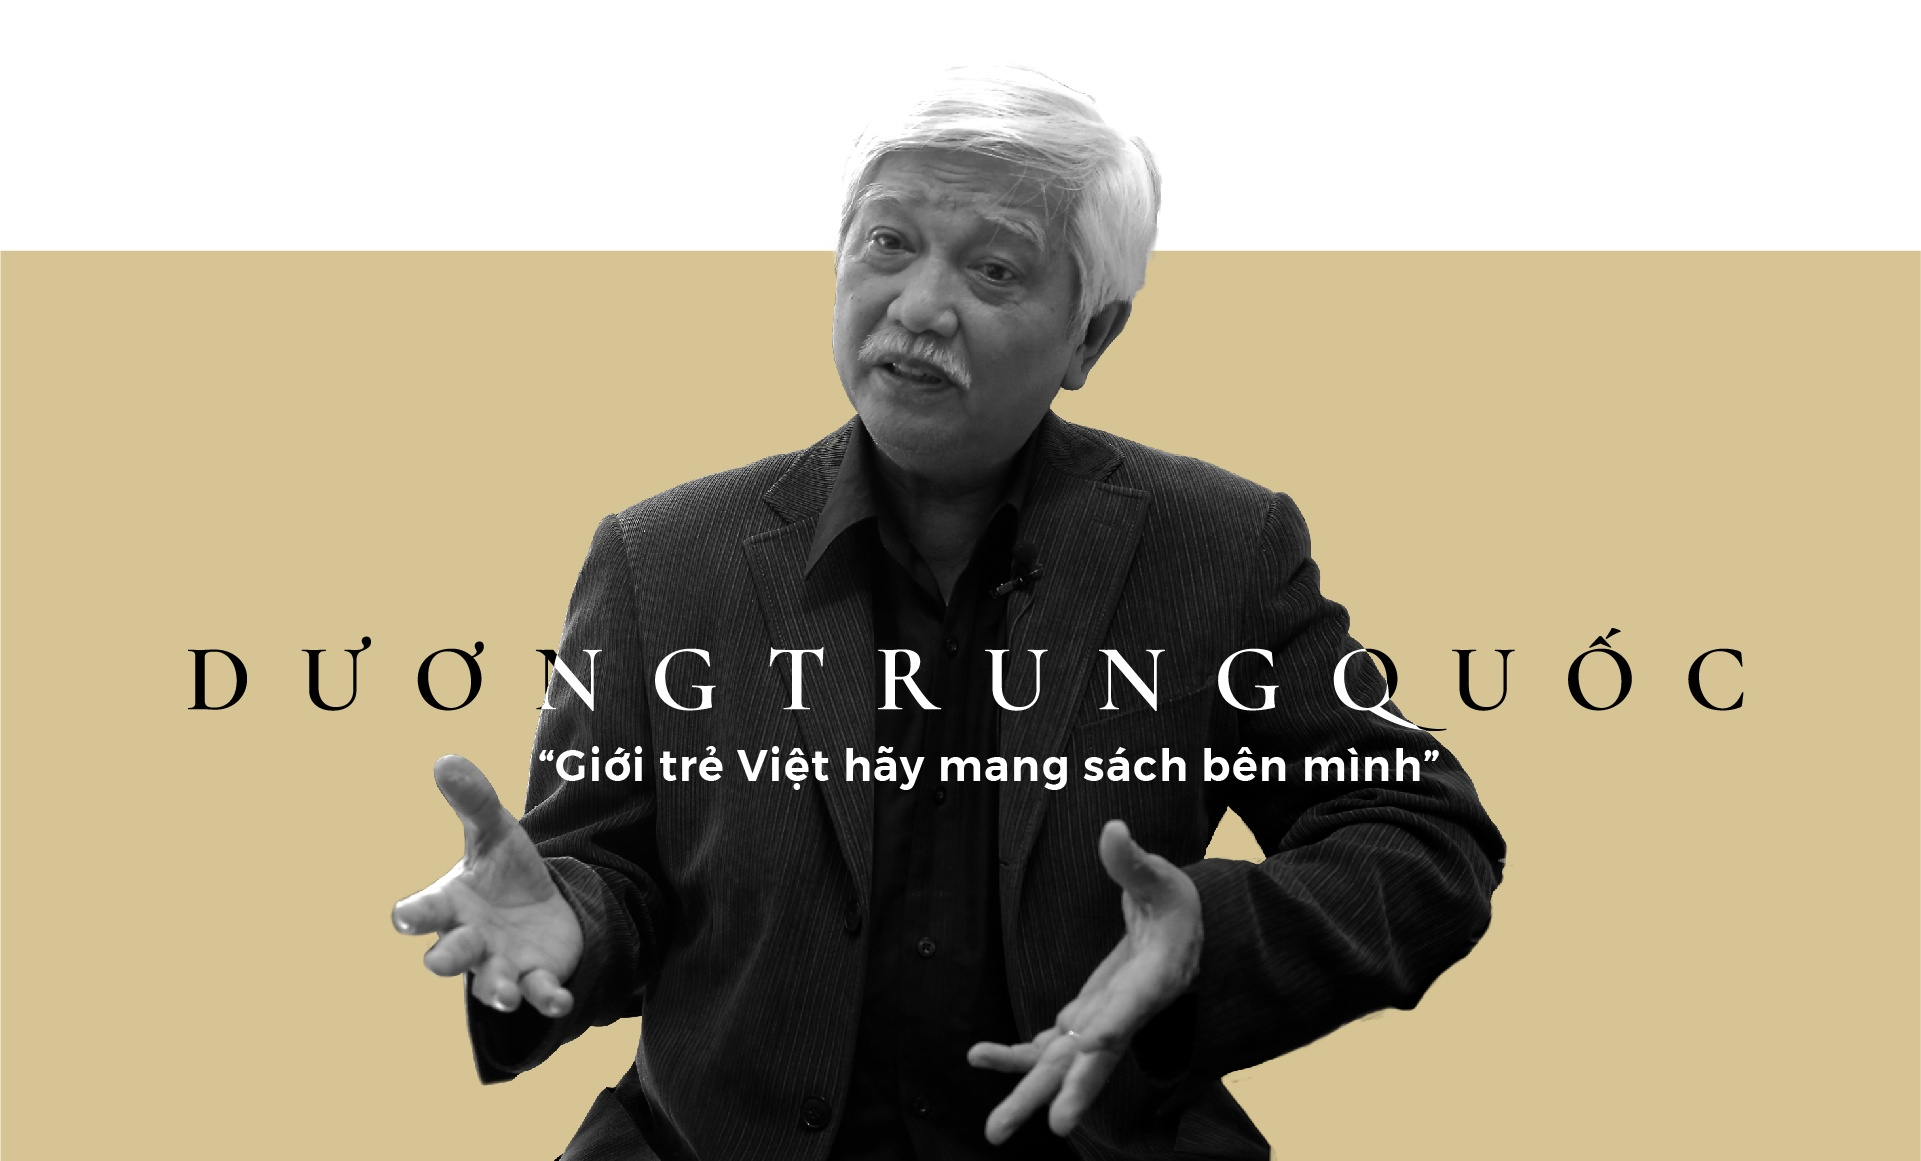 Nha su hoc Duong Trung Quoc: 'Gioi tre Viet hay mang sach ben minh' hinh anh 2